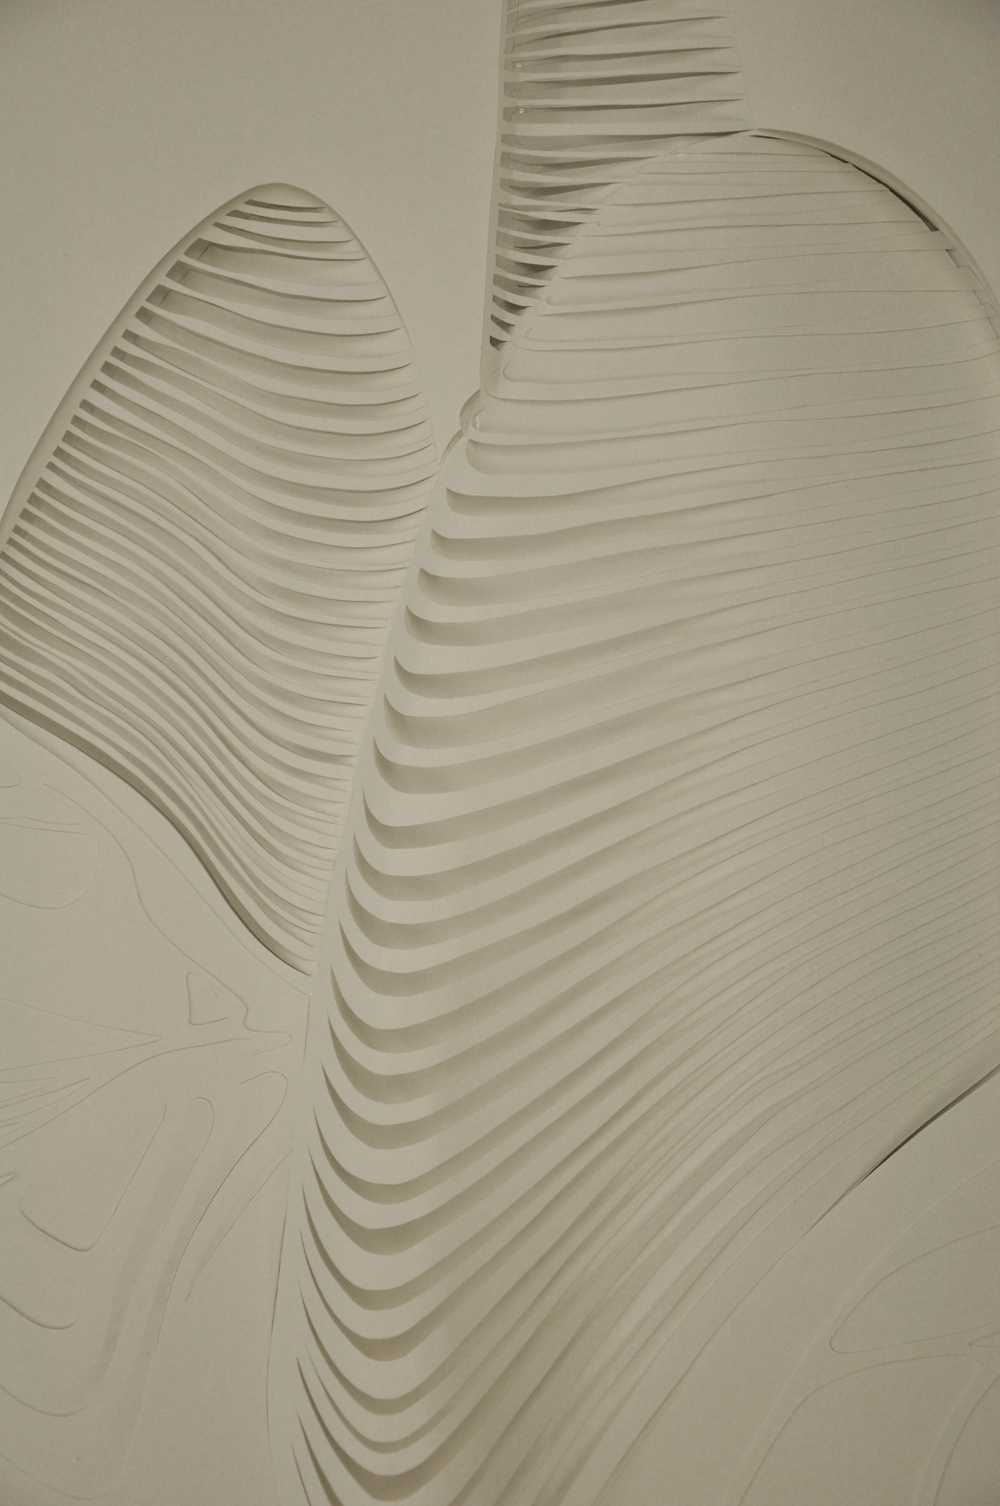 paper relief model zaha hadid architects guillermo l fortuño